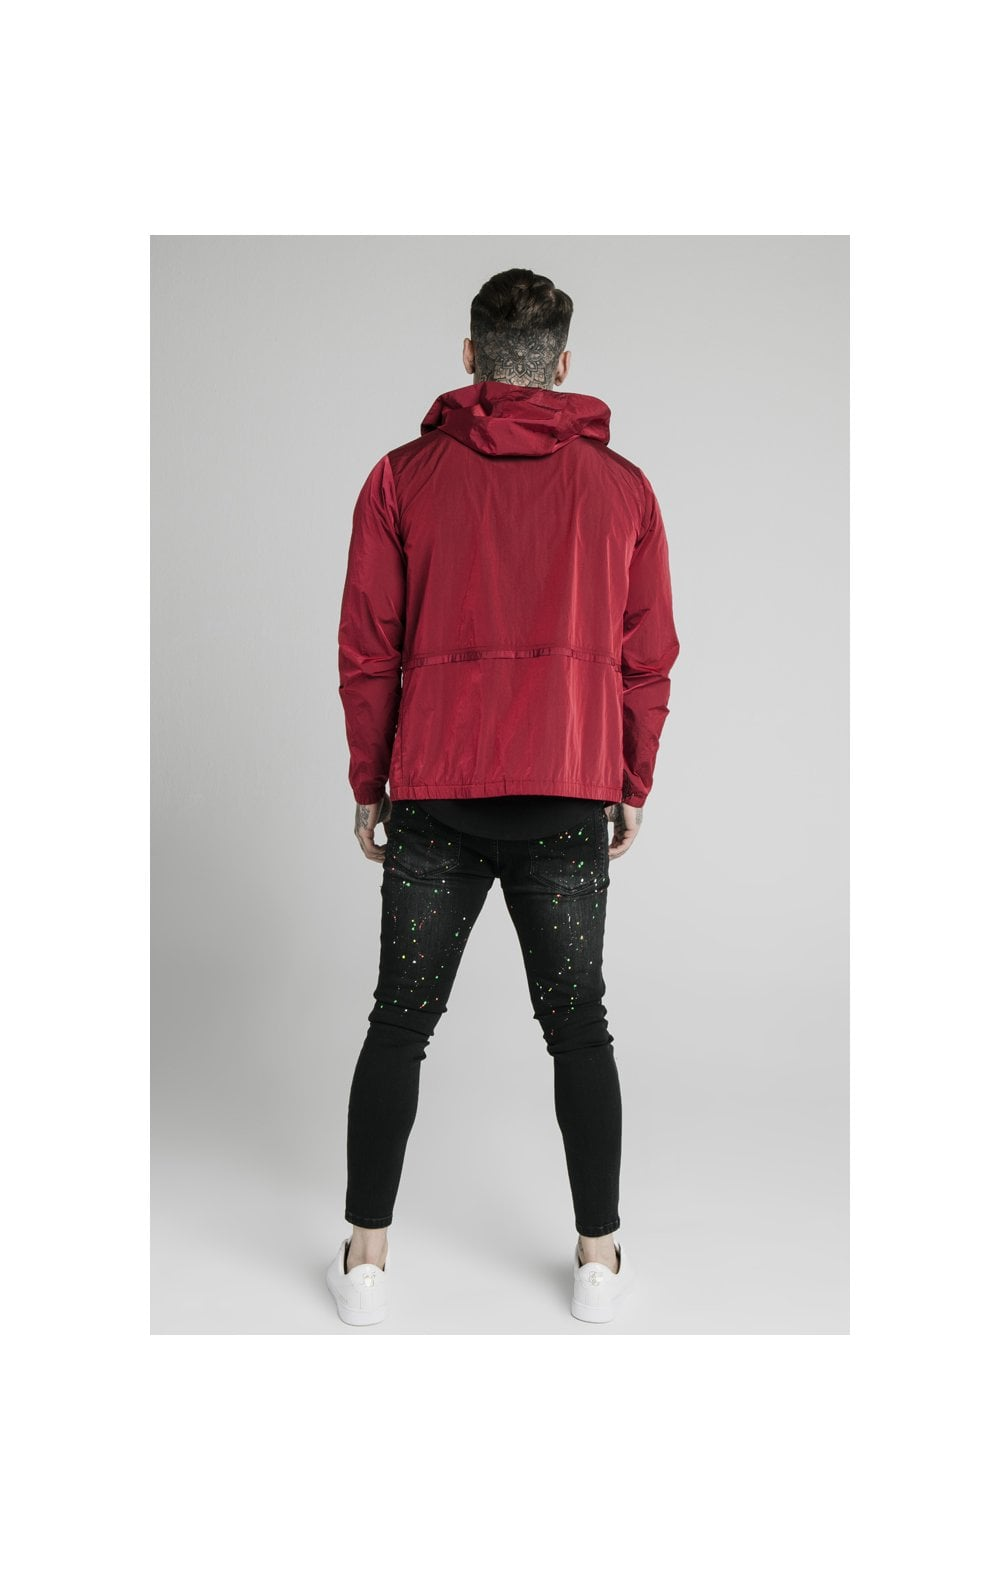 Load image into Gallery viewer, SikSilk Zip Through Windbreaker Jacket - Red (5)